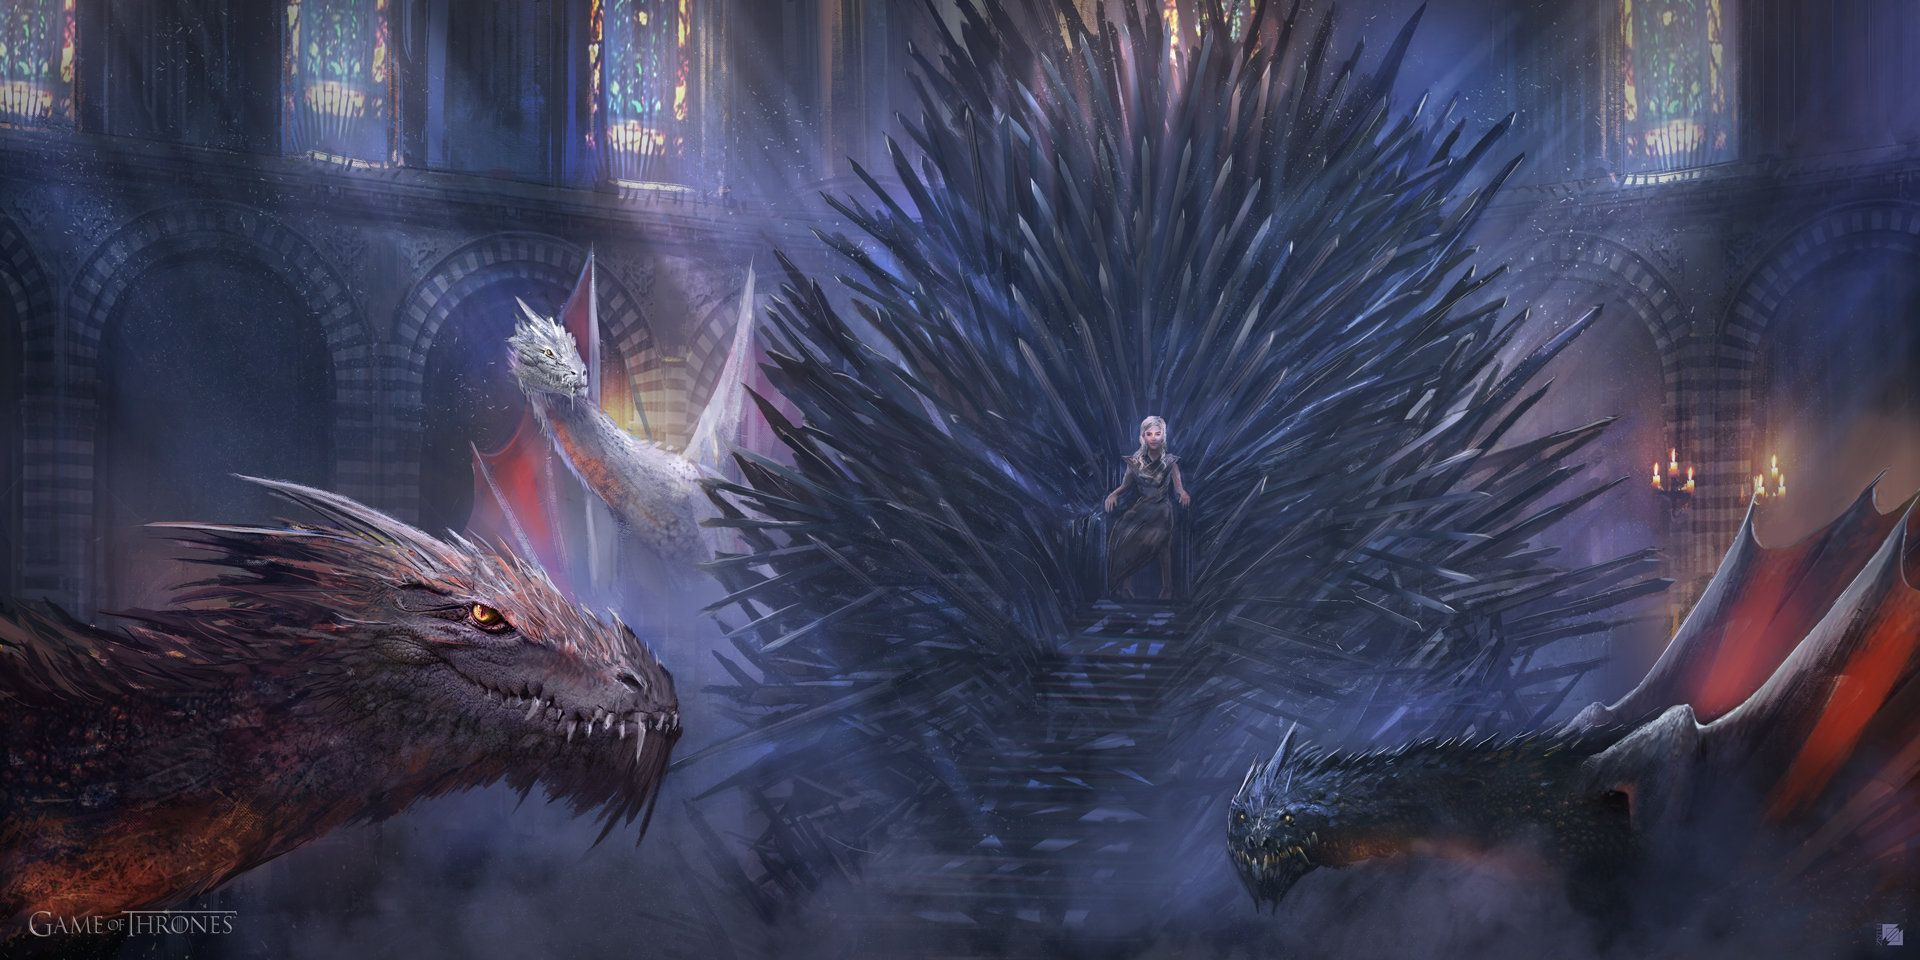 Game Of Thrones Concept Art And Illustrations I Game Of Throne